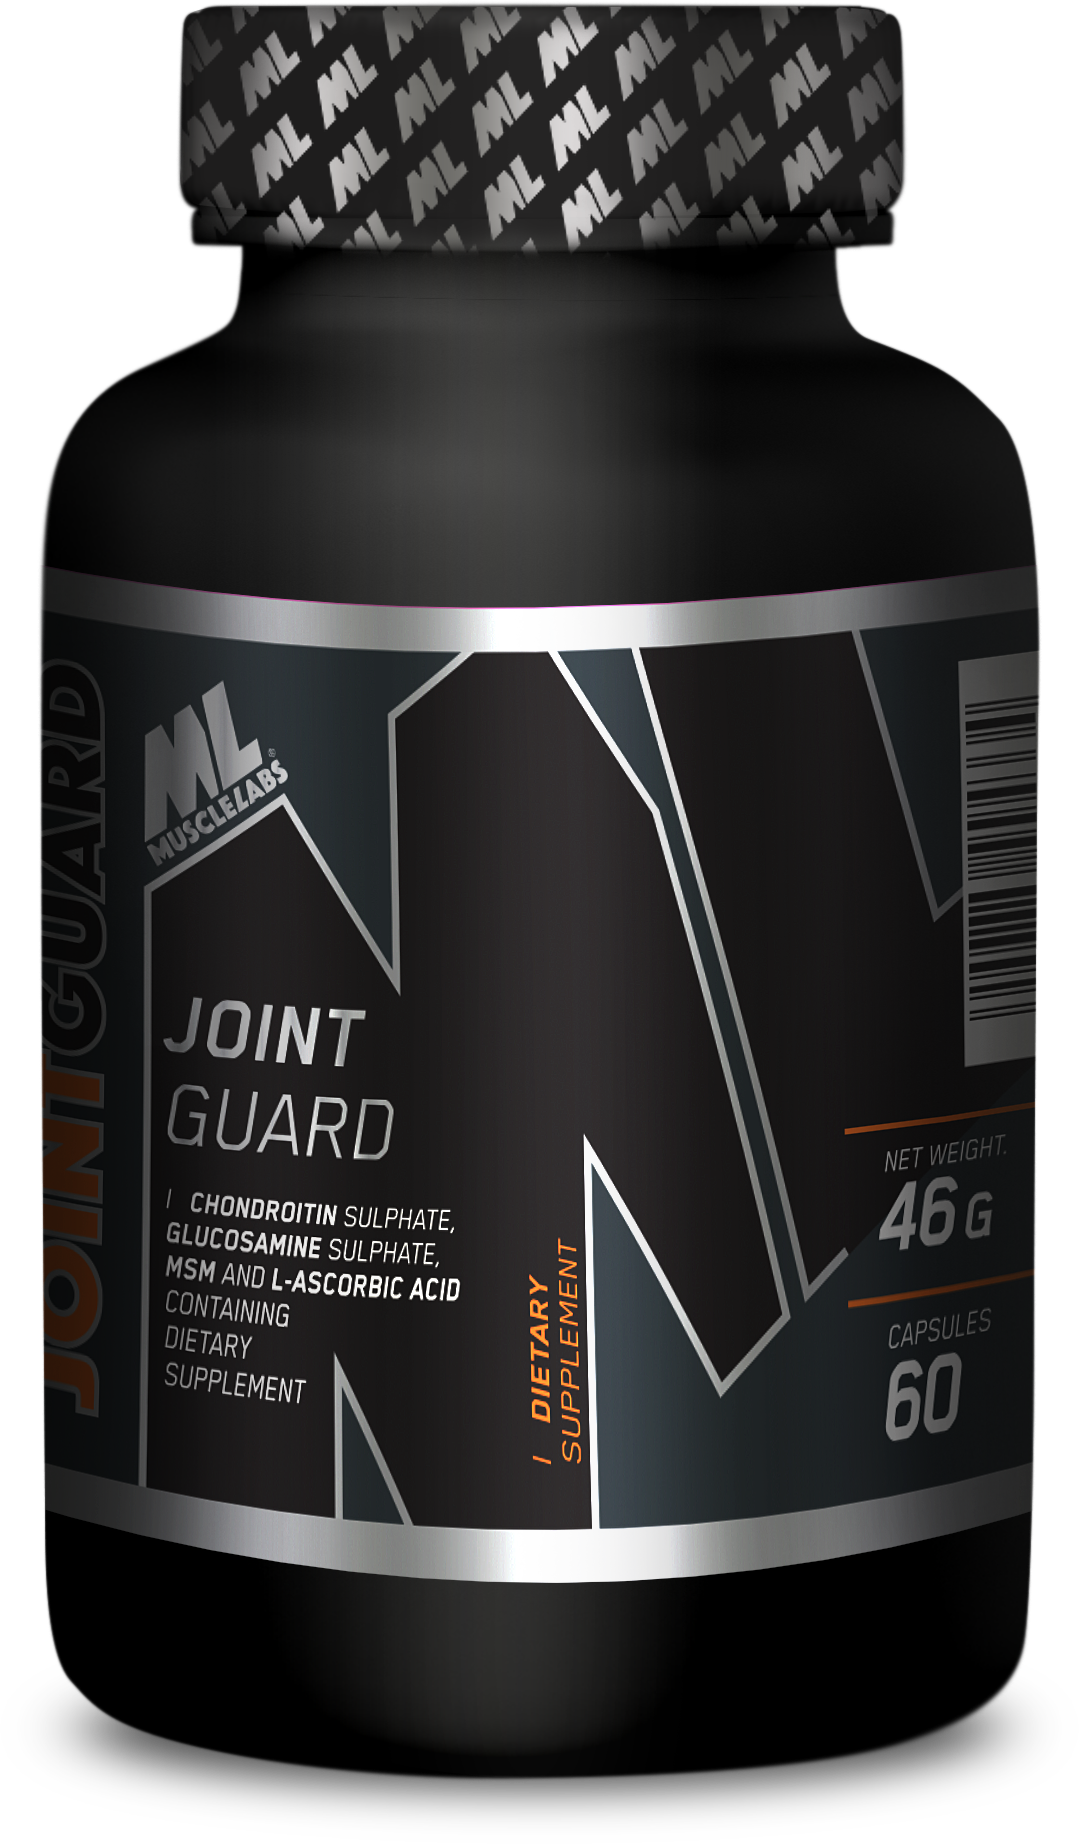 MUSCLELABS JOINT GUARD